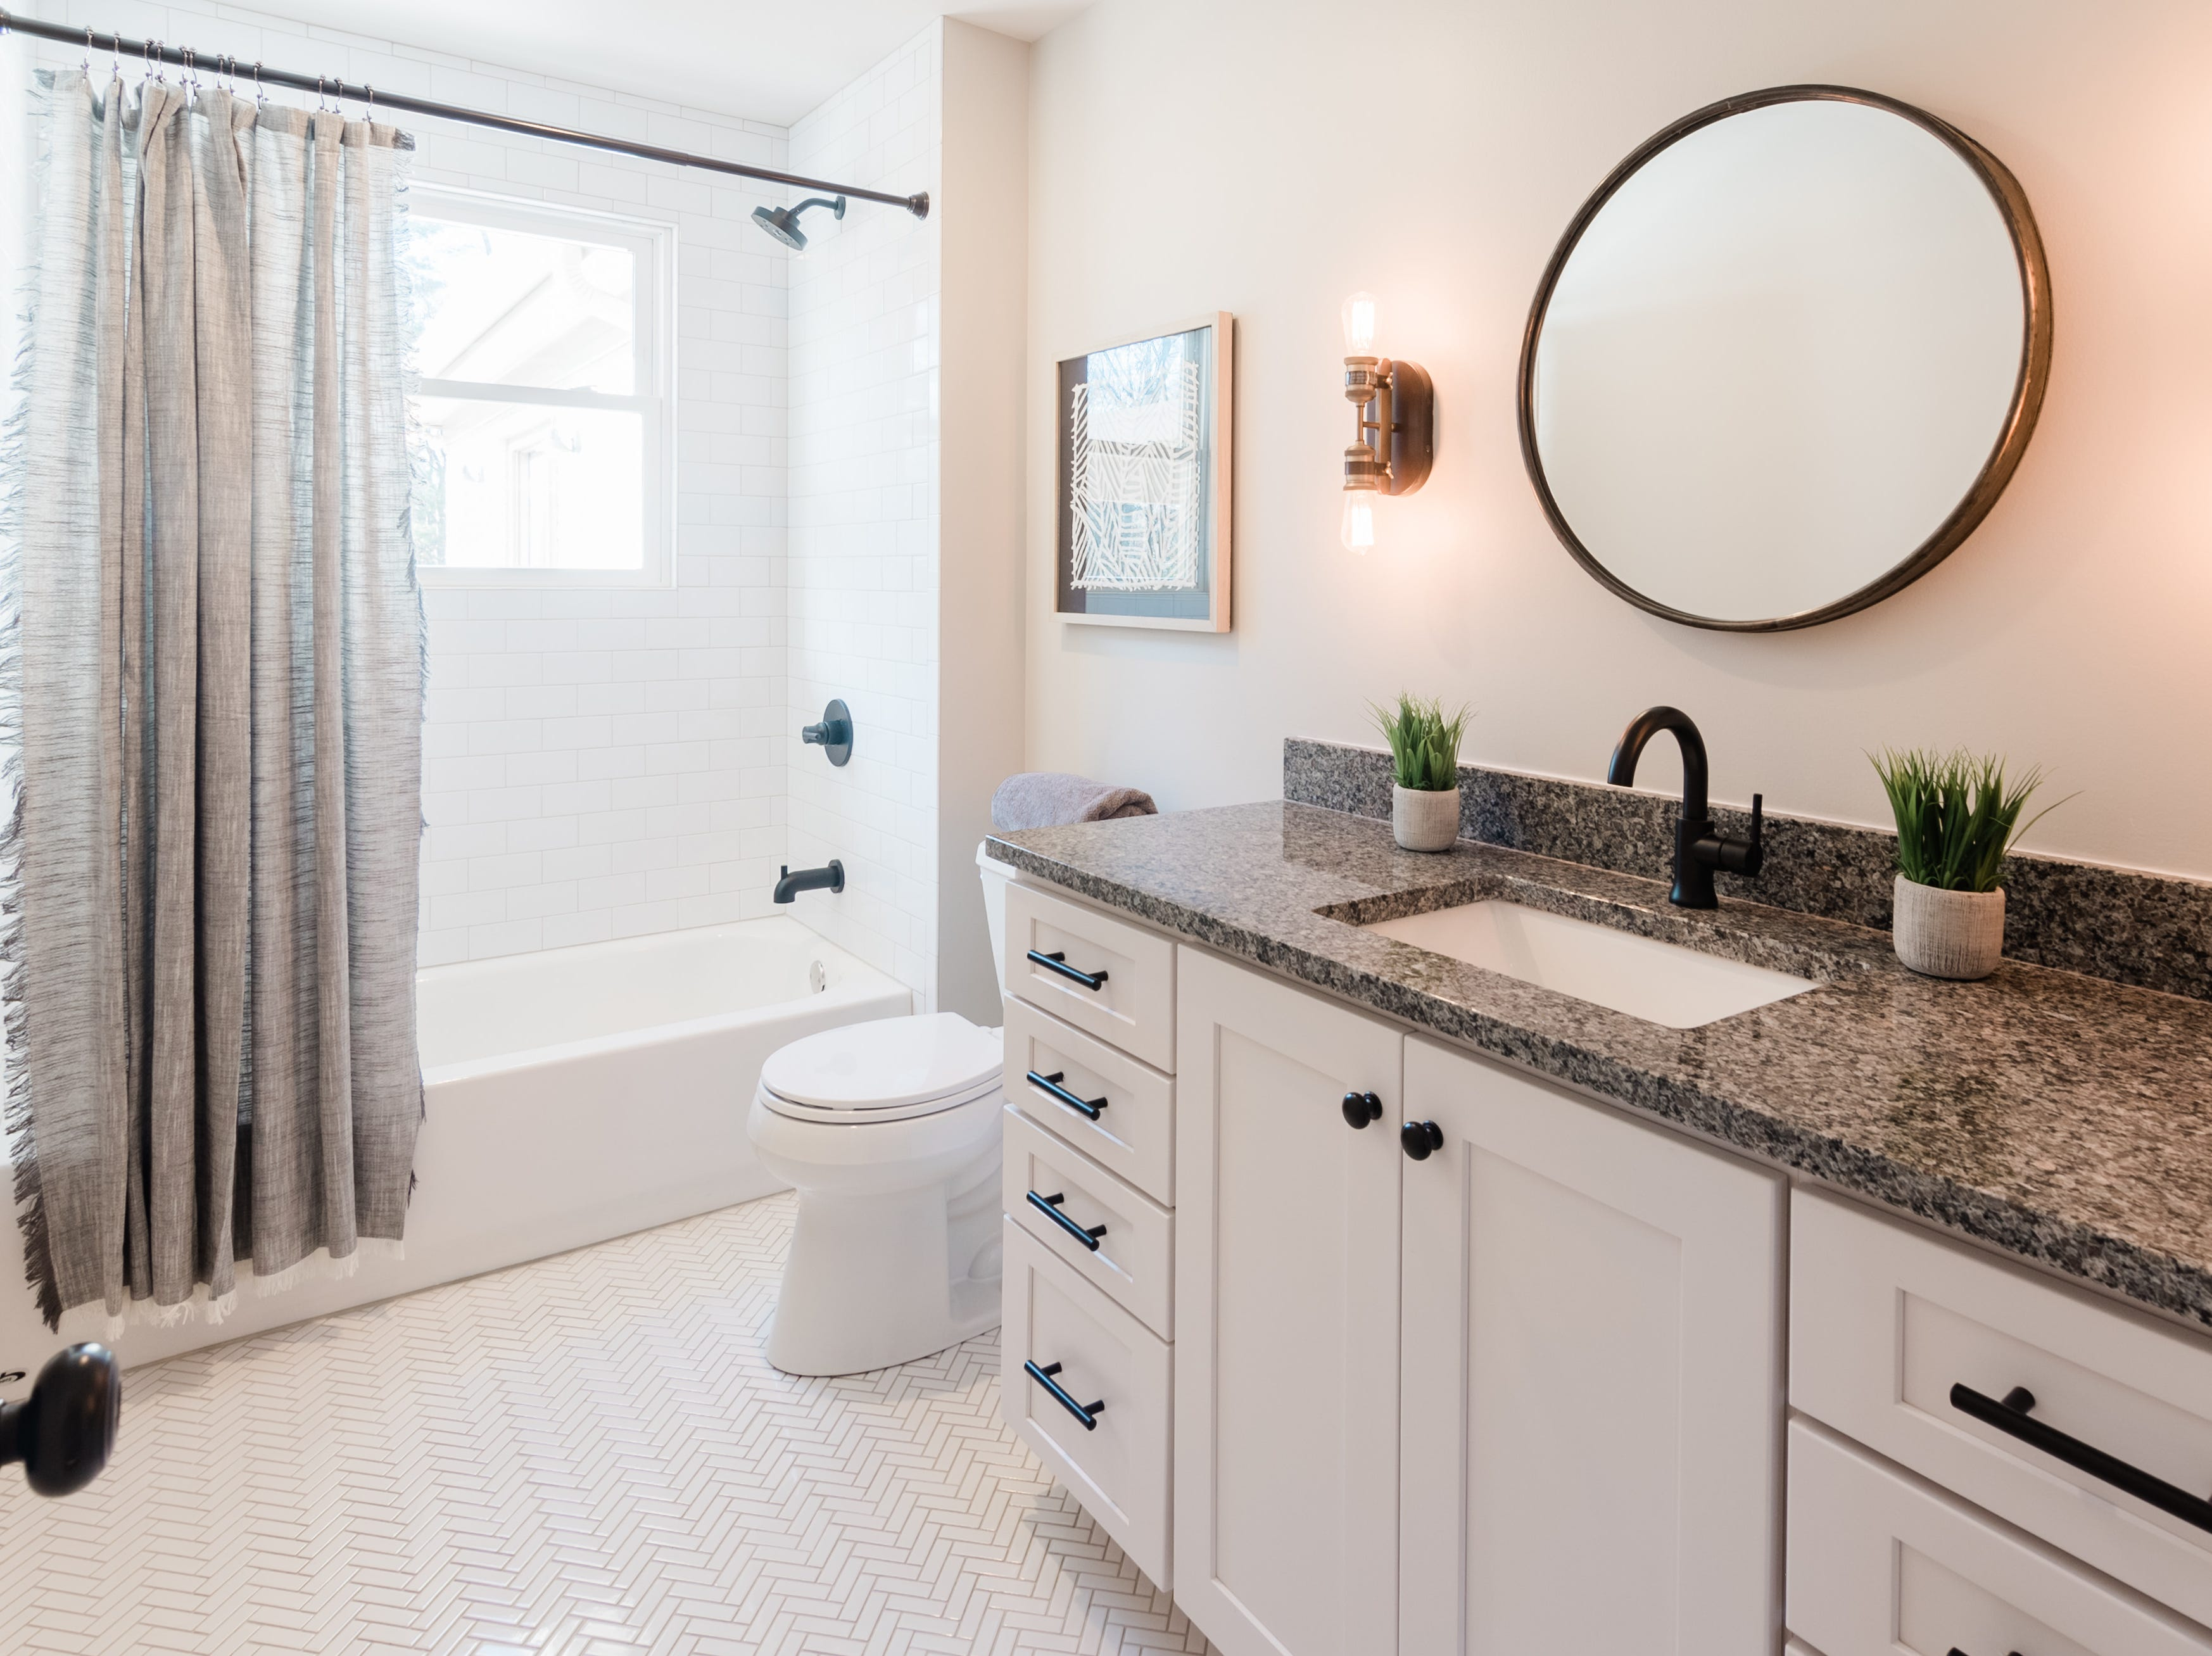 AFTER: This bathroom in the home at 405 Oakvale was remodeled to have more space as well as modern touches such as Chevron subway tiles on the floor and Craftsman-style cabinets.